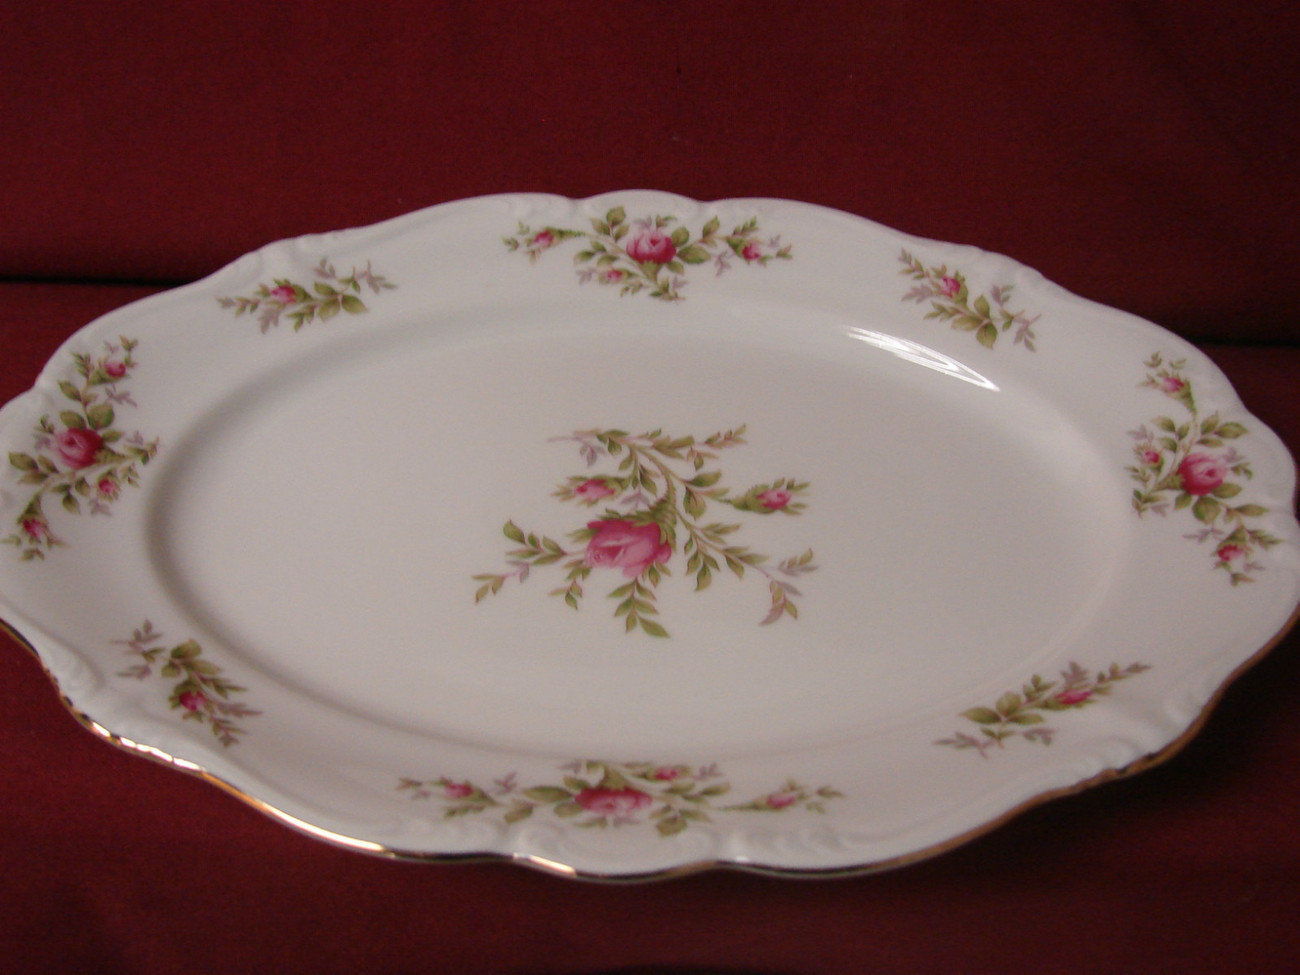 How to Identify Antique Dinnerware